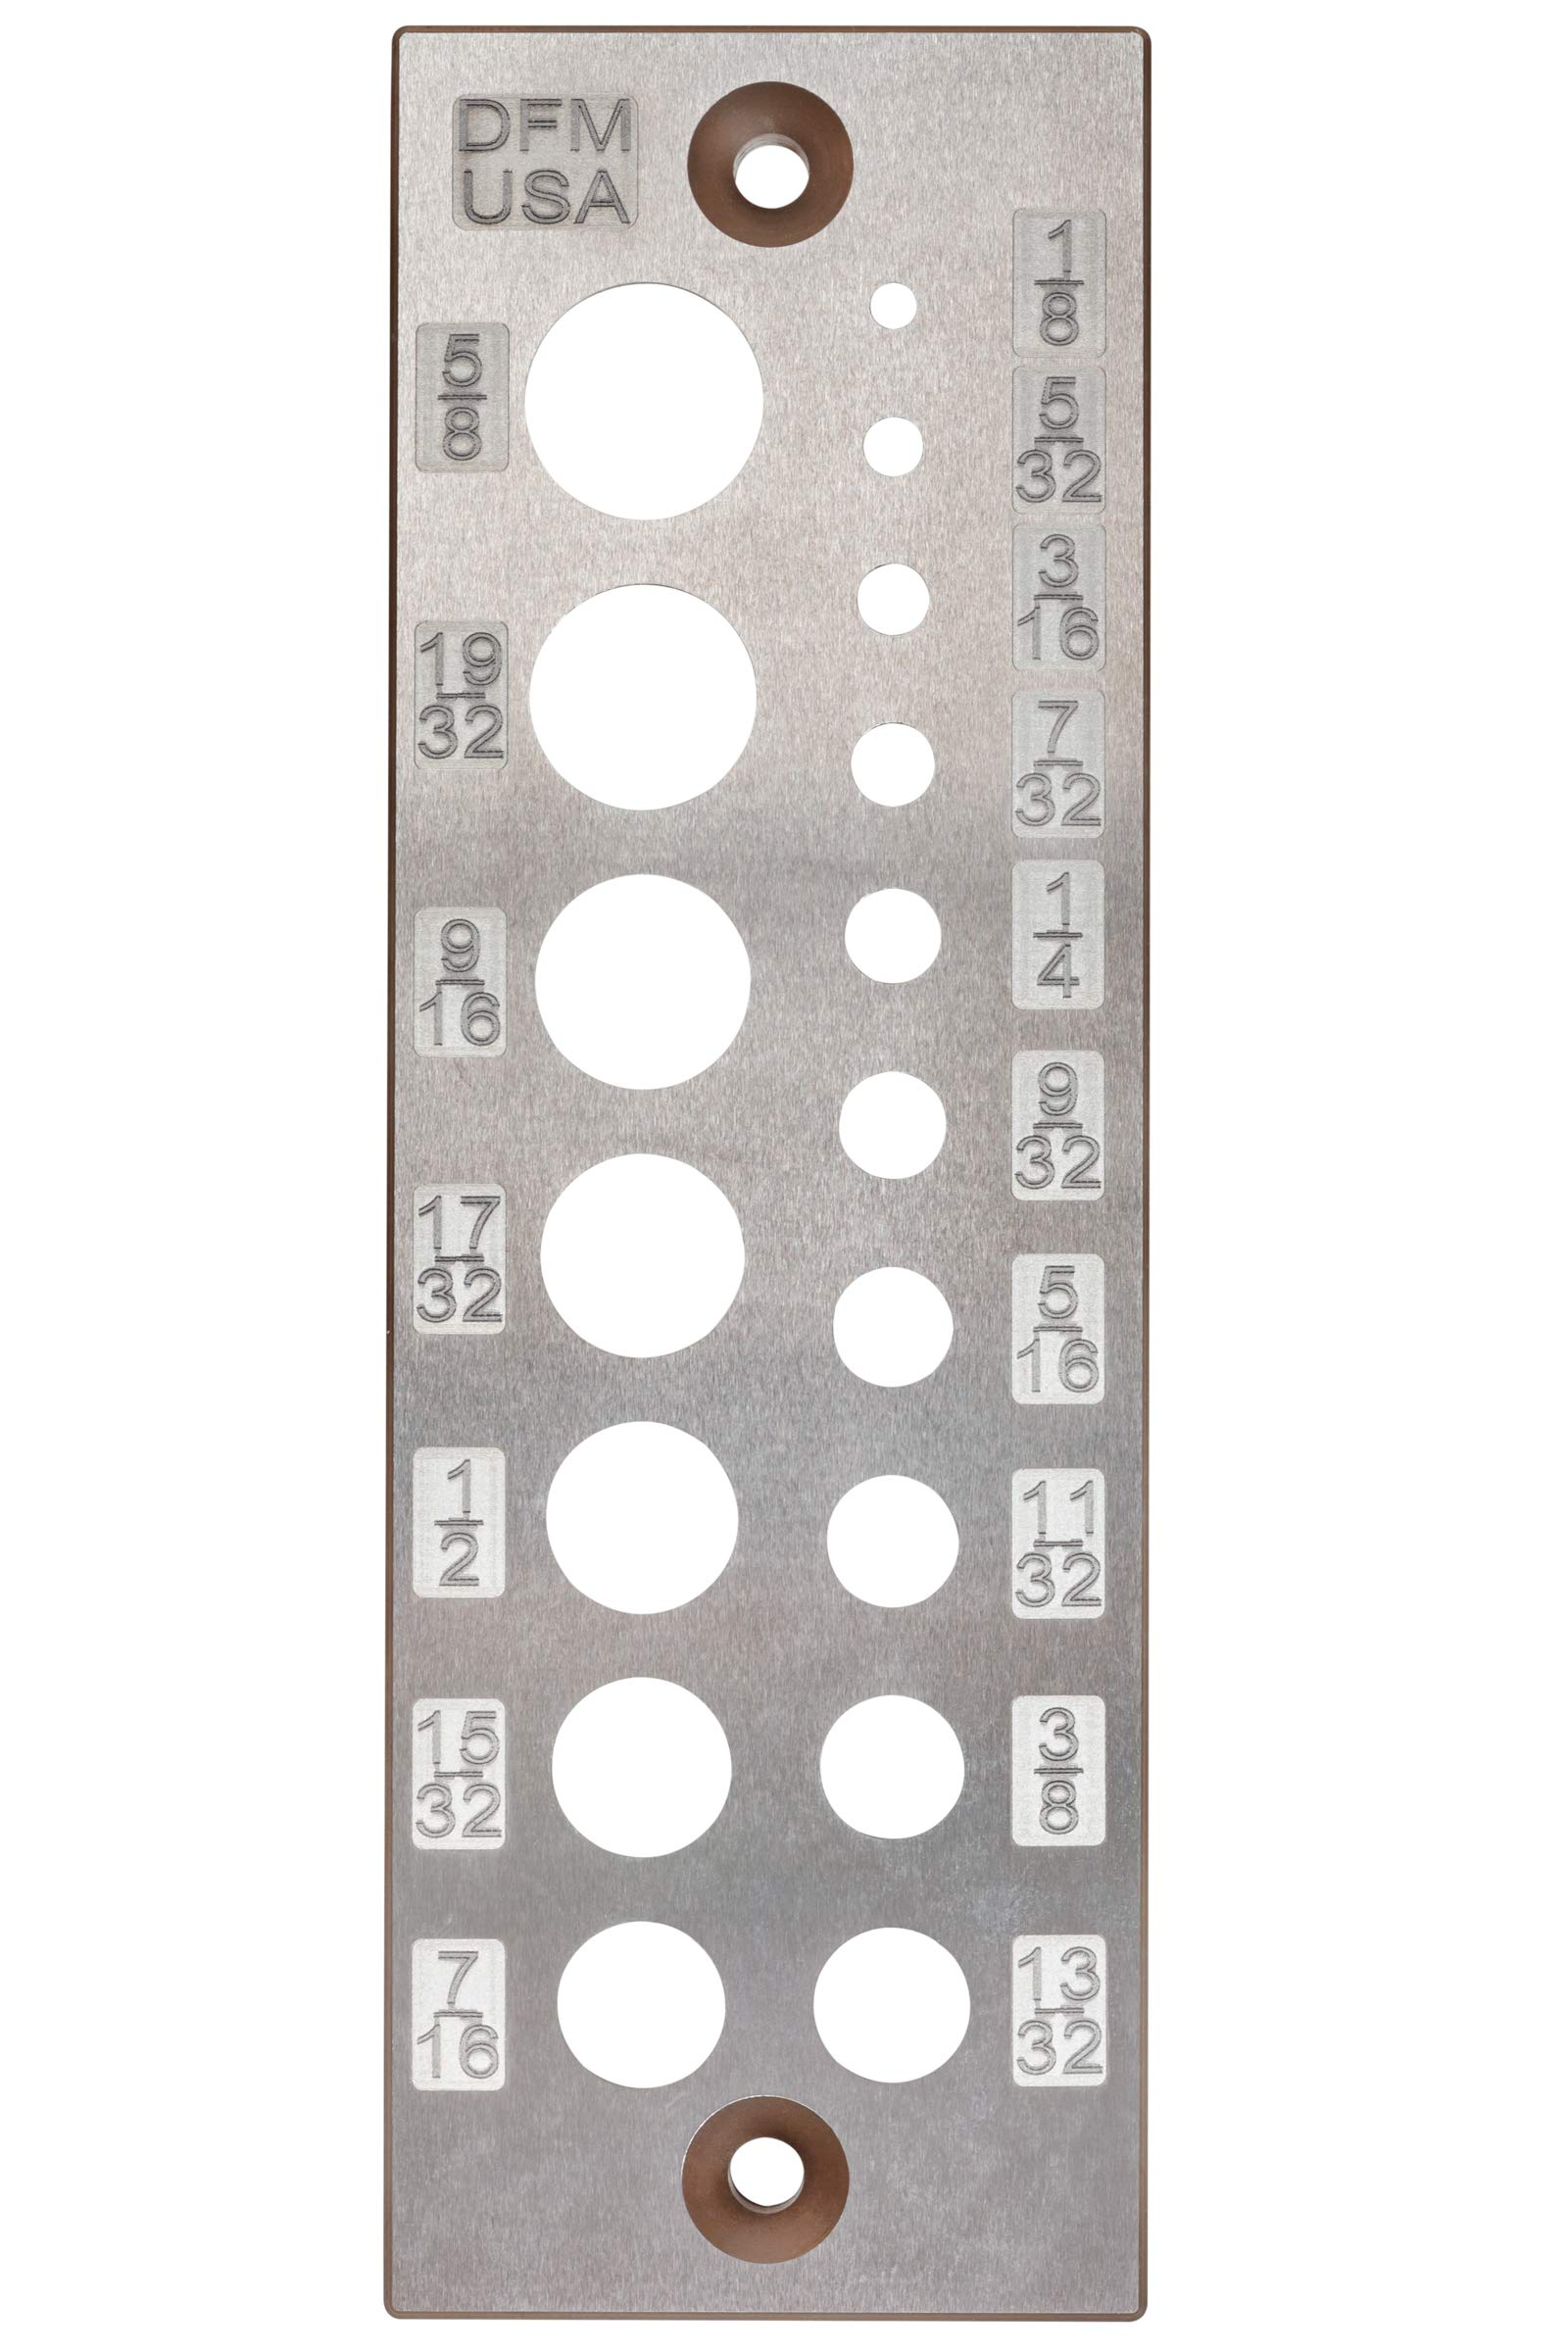 DFM A2 Steel Dowel Plate 17 Holes MADE IN USA (English 17 Holes)